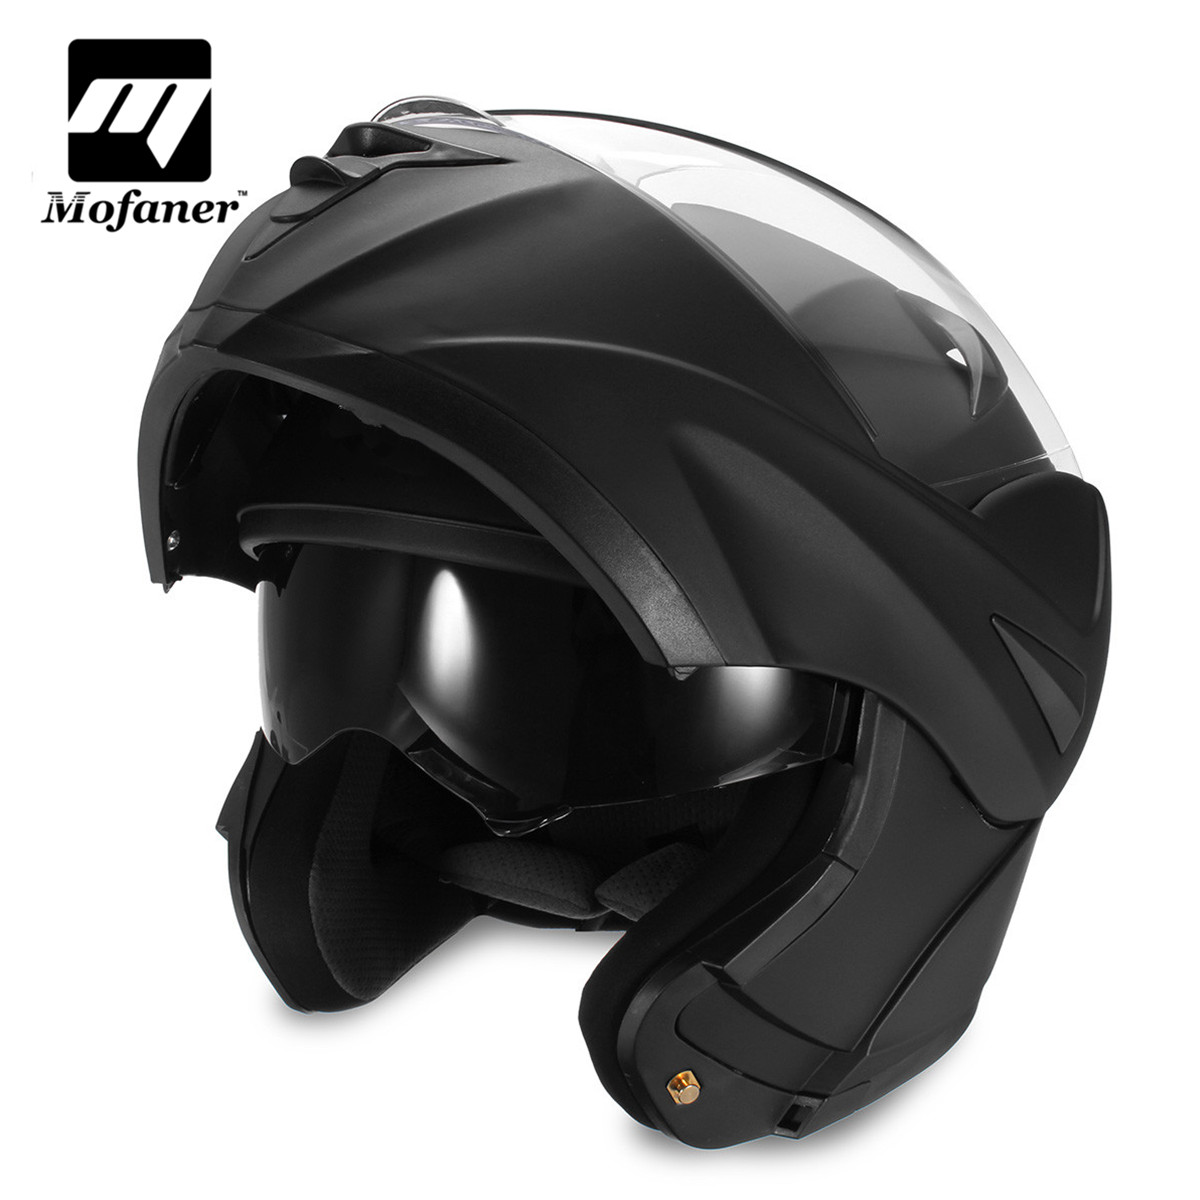 Mofaner Double Lens Dual Visor Motocross Motorcycle Modular Helmet Safety Full Face Open Motorbike Helmets 2017 new ece certification ls2 motocross motorcycle helmet ff352 full face motorbike helmets made of abs and pc silver decadent